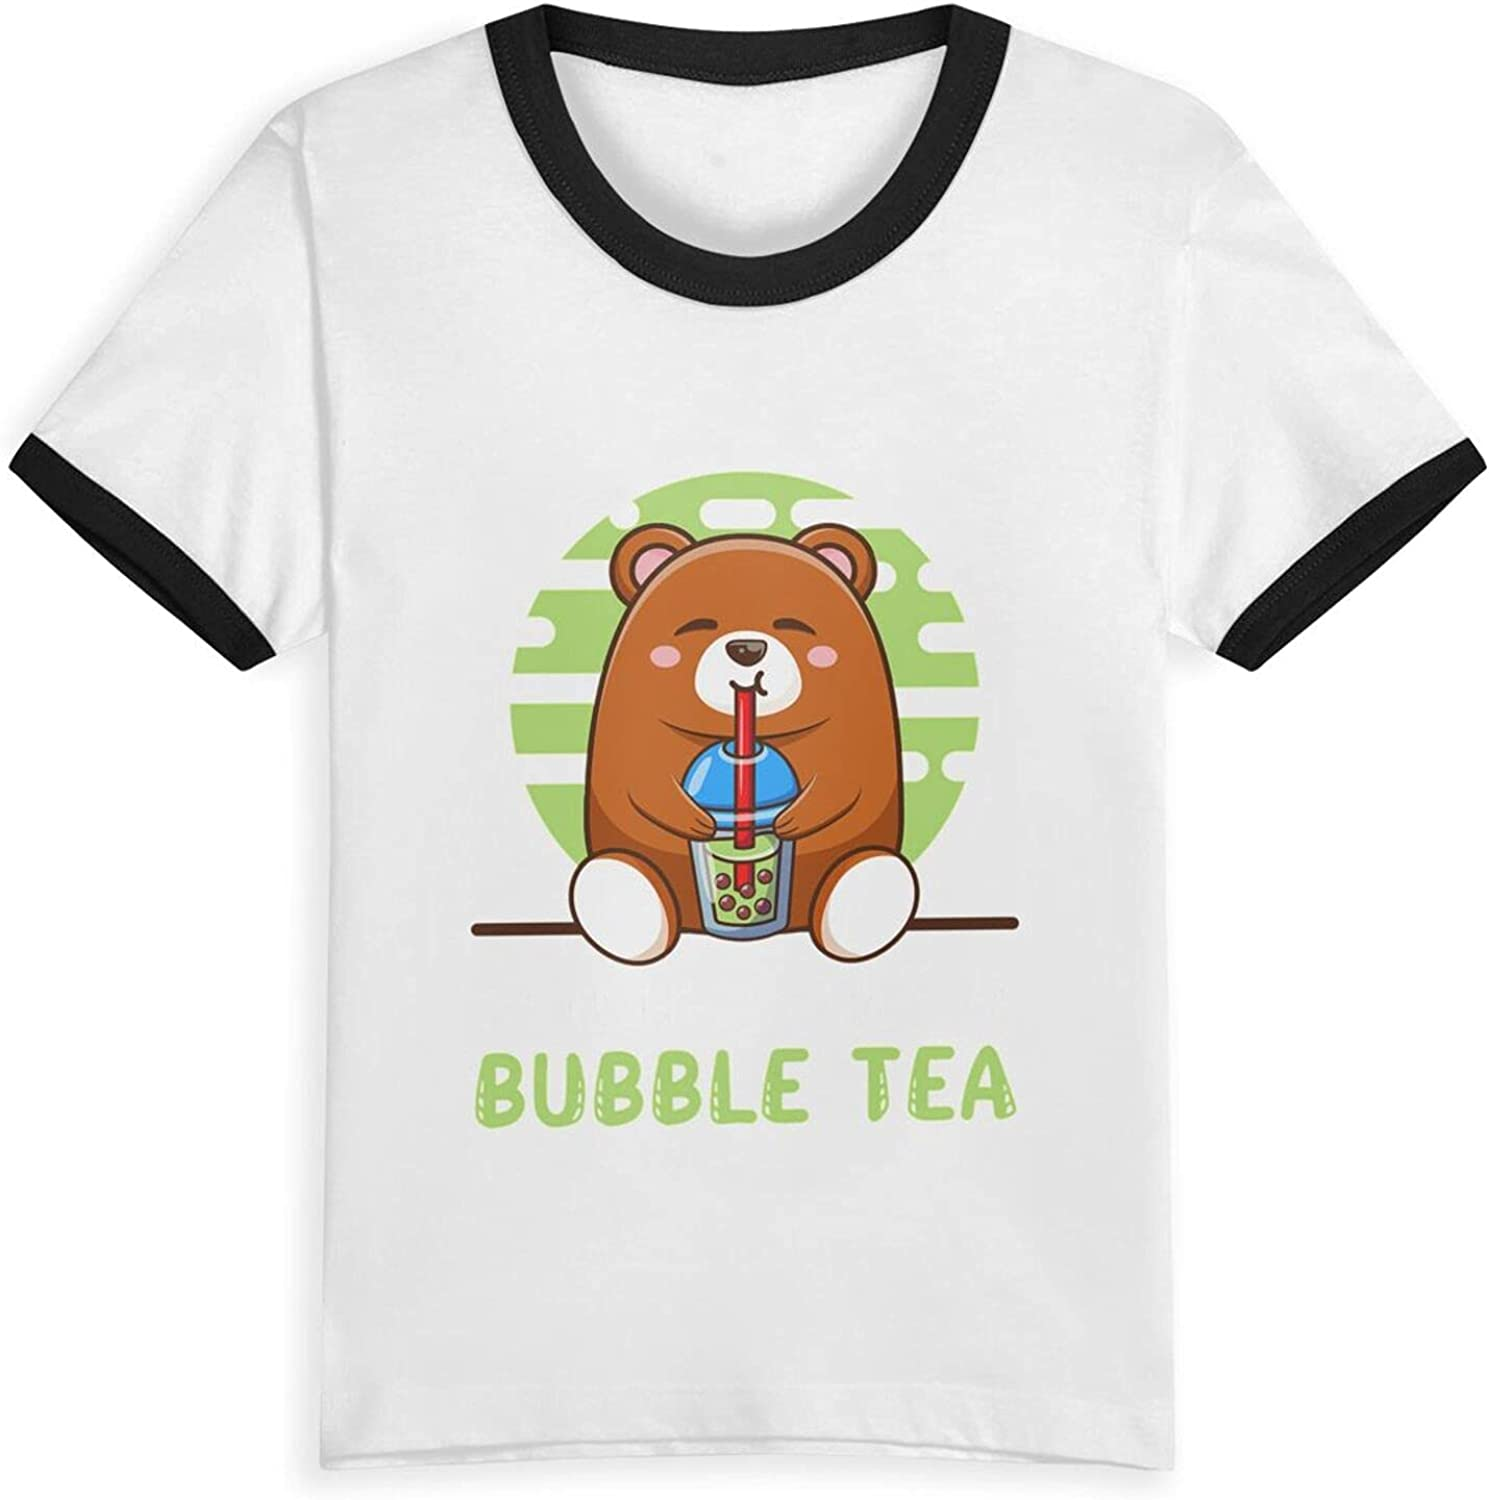 You Had Me at Bubble Tea Bear T-Shirts Novelty for Youth Tees with Cool Designs